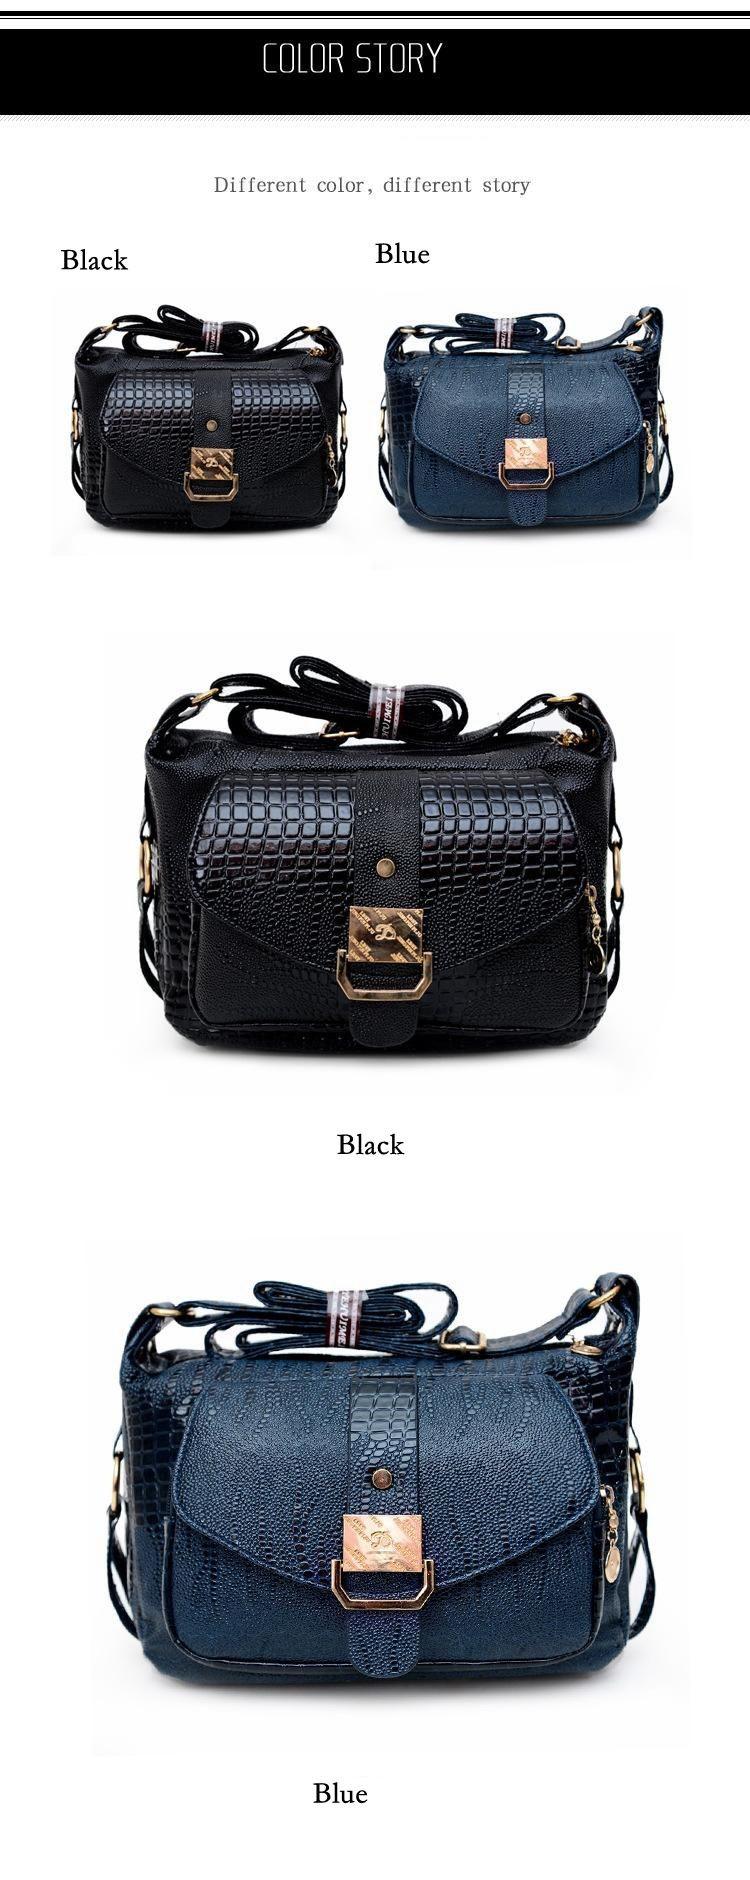 16 Women Messager Bags High Quality PU Leather Shoulder Bag Mom Causal Crossbody Bags Women Handbags Bolsas #16Me31/9 4